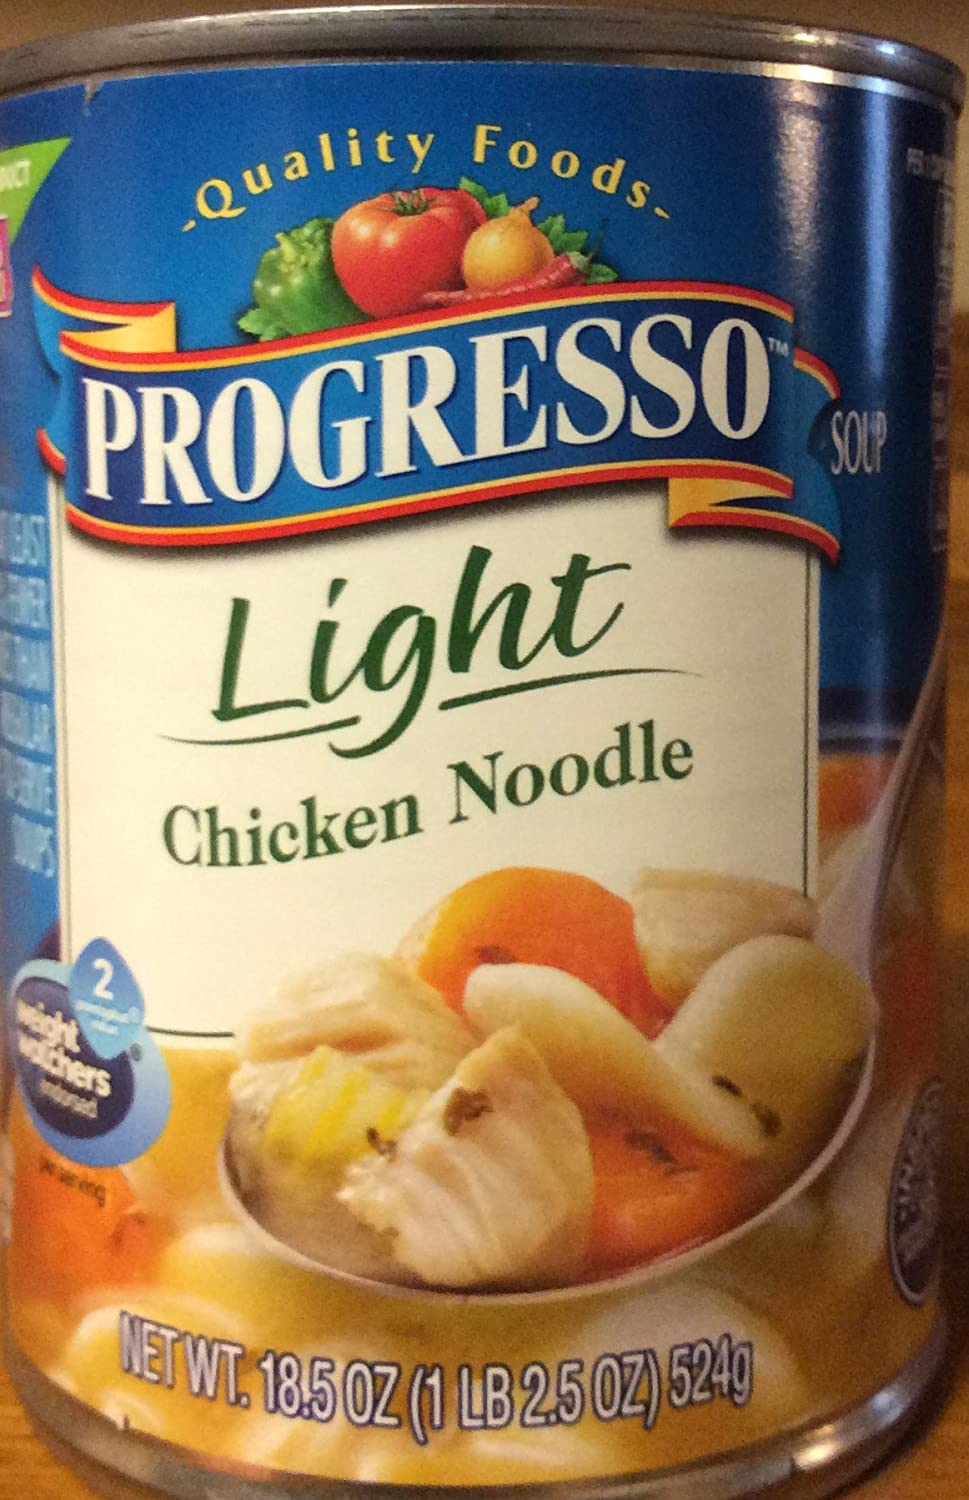 Progresso Light Chicken Noodle Soup 18.5oz Can (Pack of 5) read four bean salad can 15 oz  pack of 24